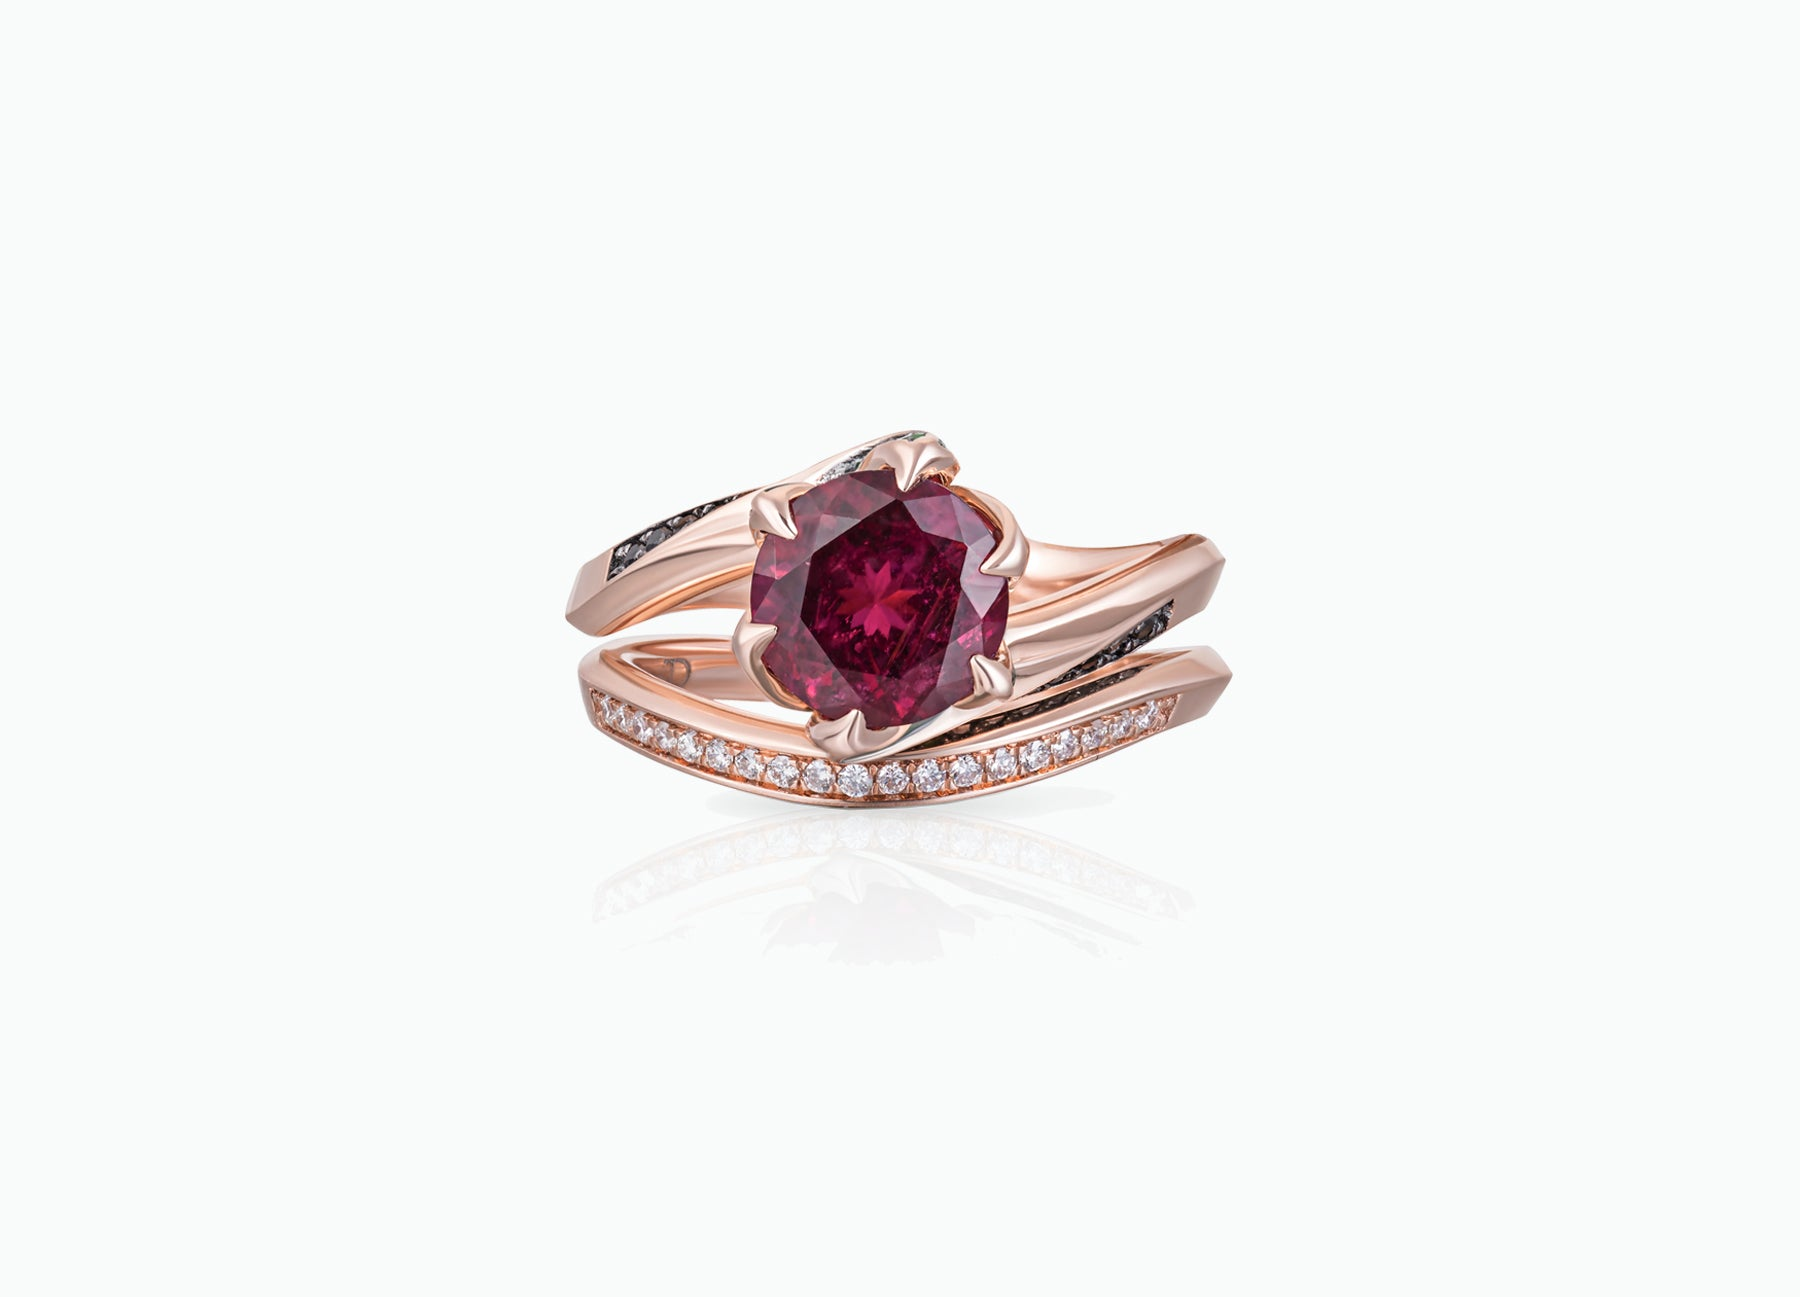 RUBELLITE LILY PAD RING